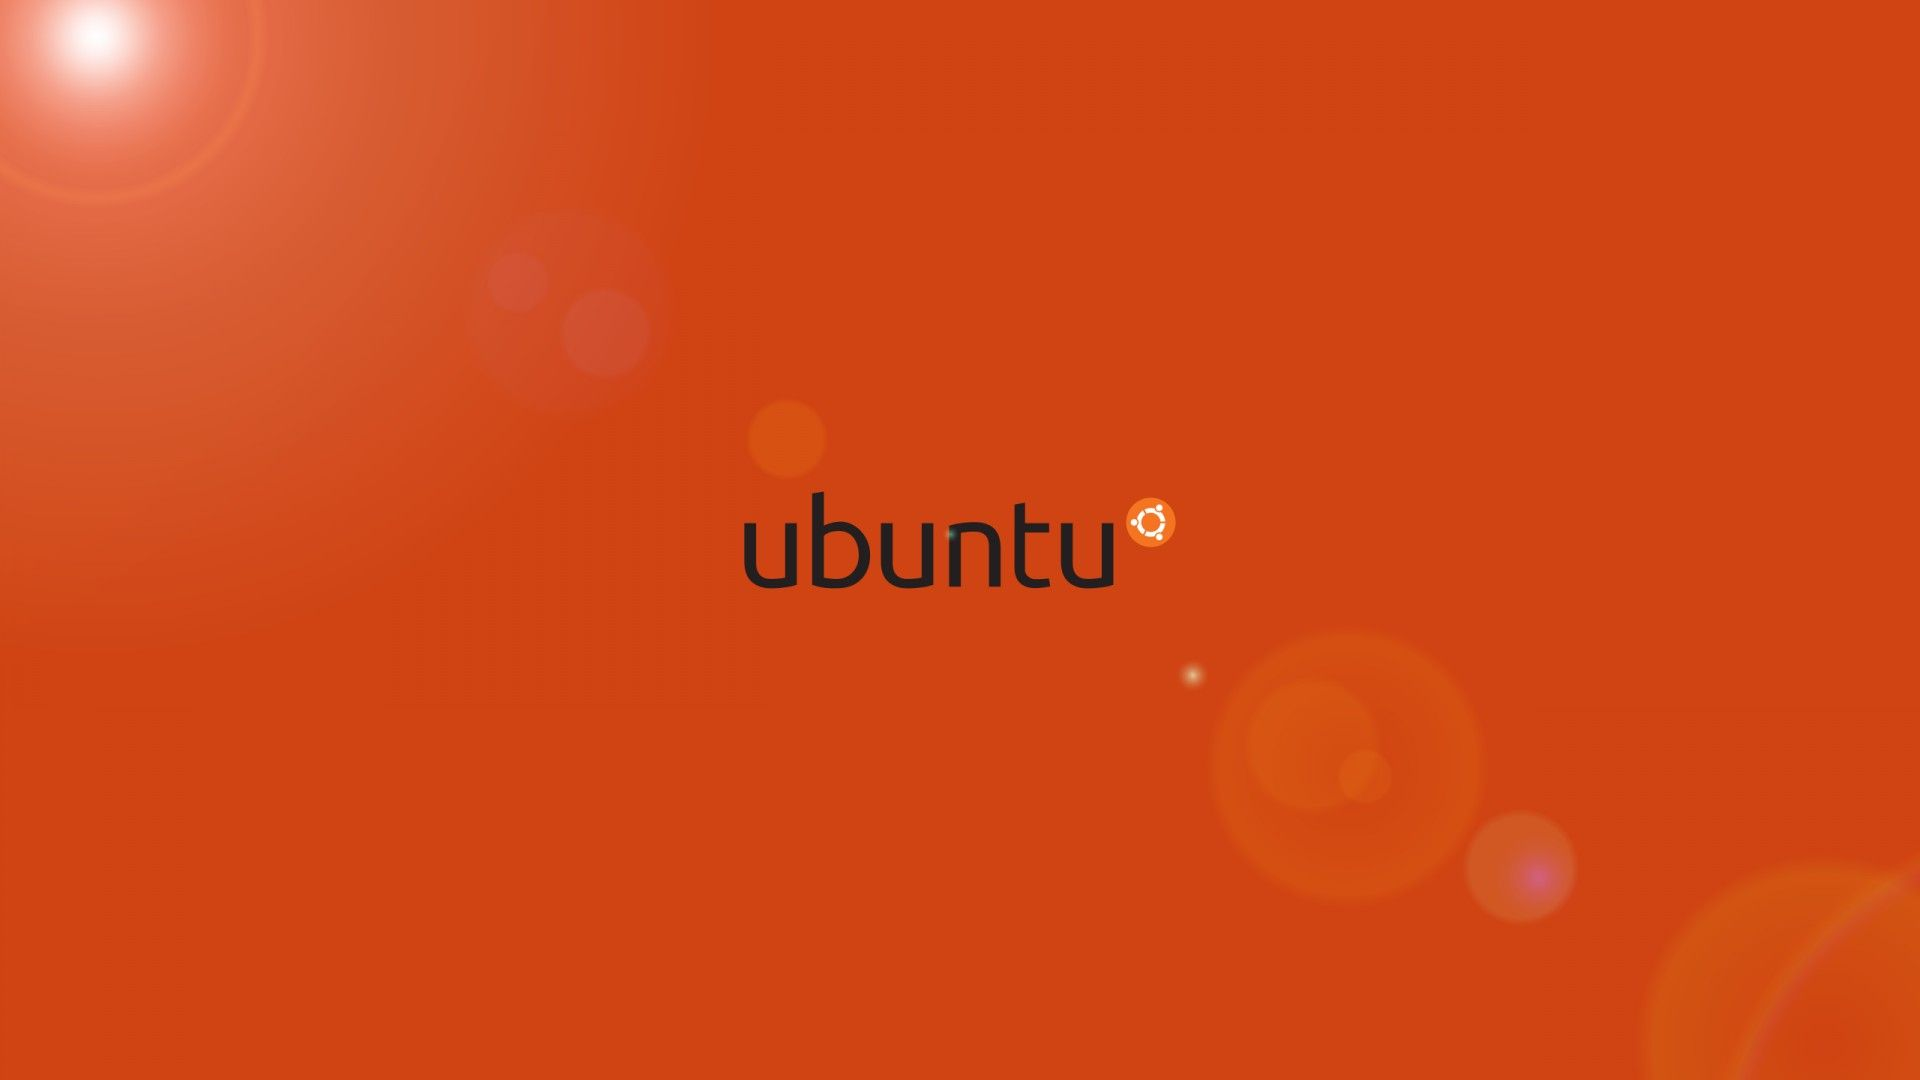 Mesmerizing Ubuntu Wallpapers 1920x1080PX Ubuntu Wallpaper 166957 1920x1080